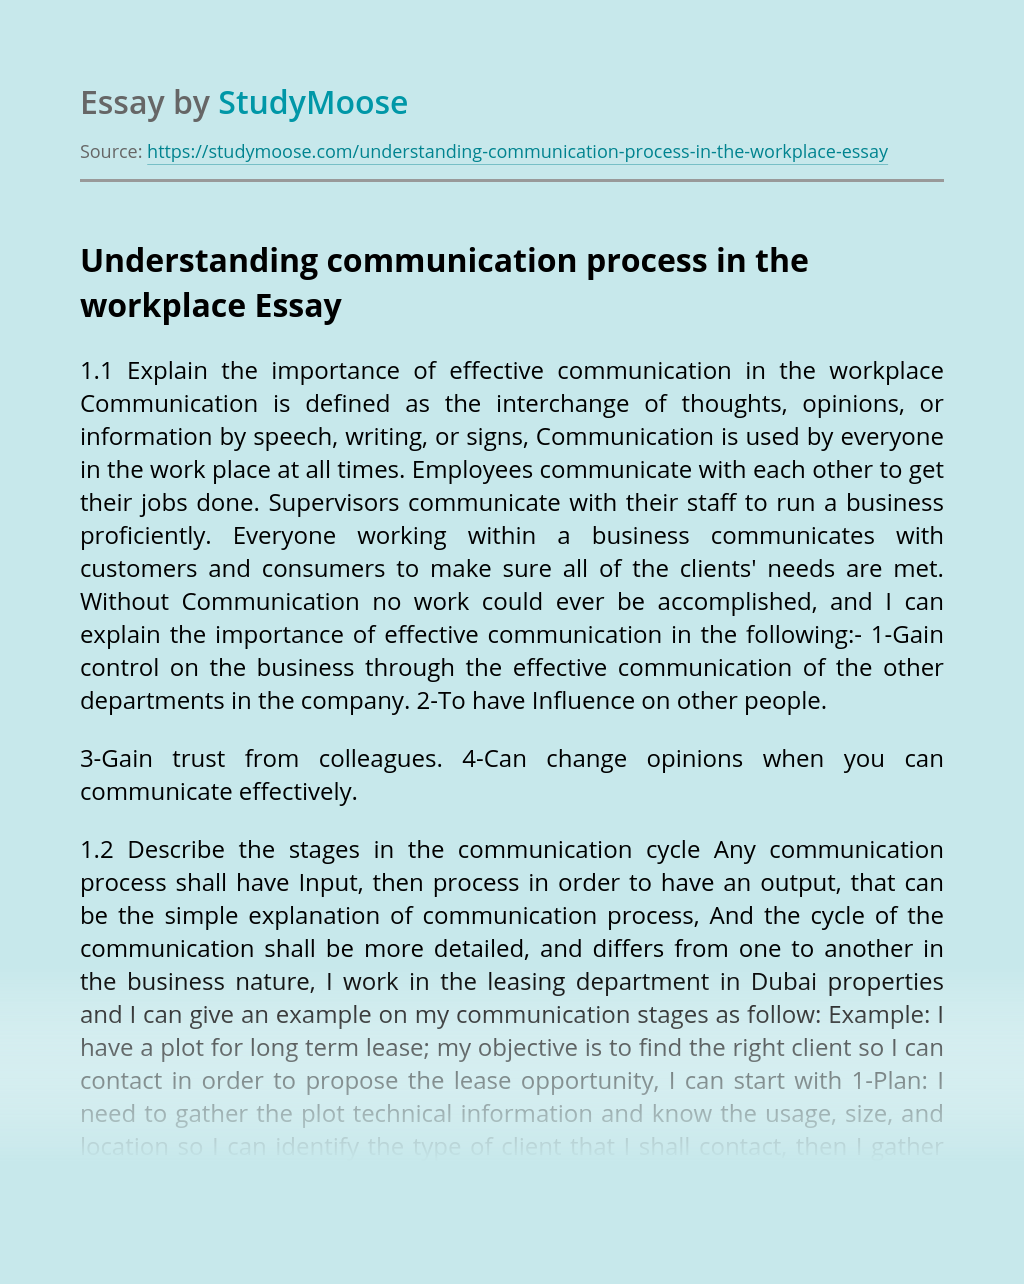 Understanding communication process in the workplace